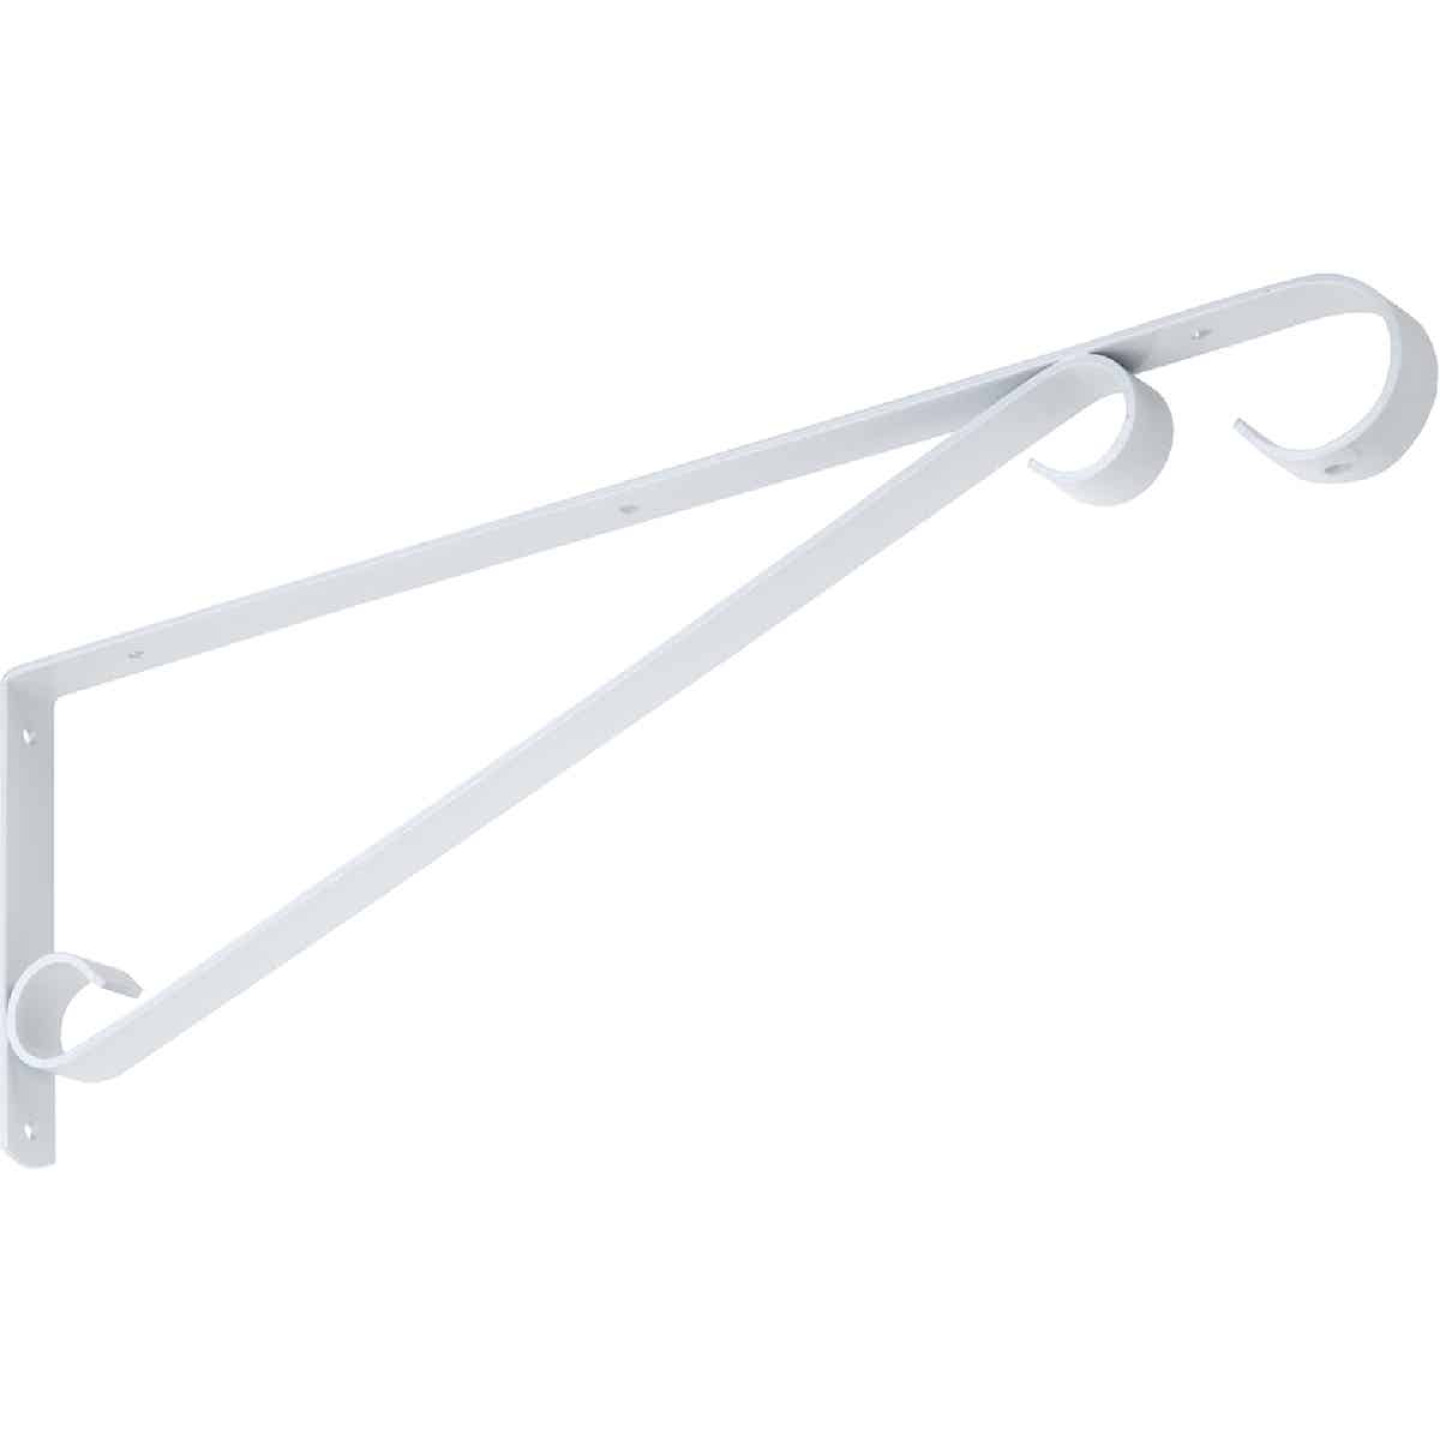 National 15 In. White Steel Hanging Plant Bracket Image 3